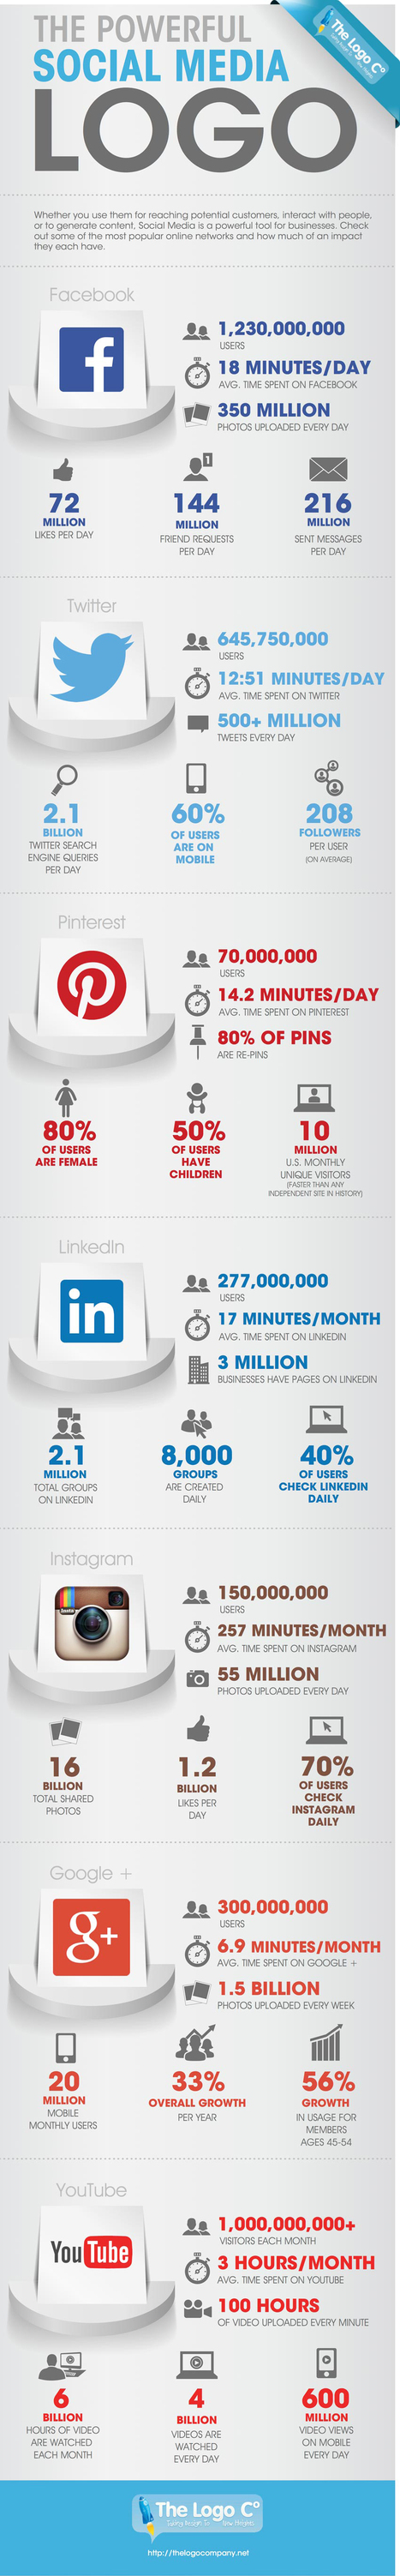 2014: The Numbers Behind Social Media [infographic] | Online World | Scoop.it